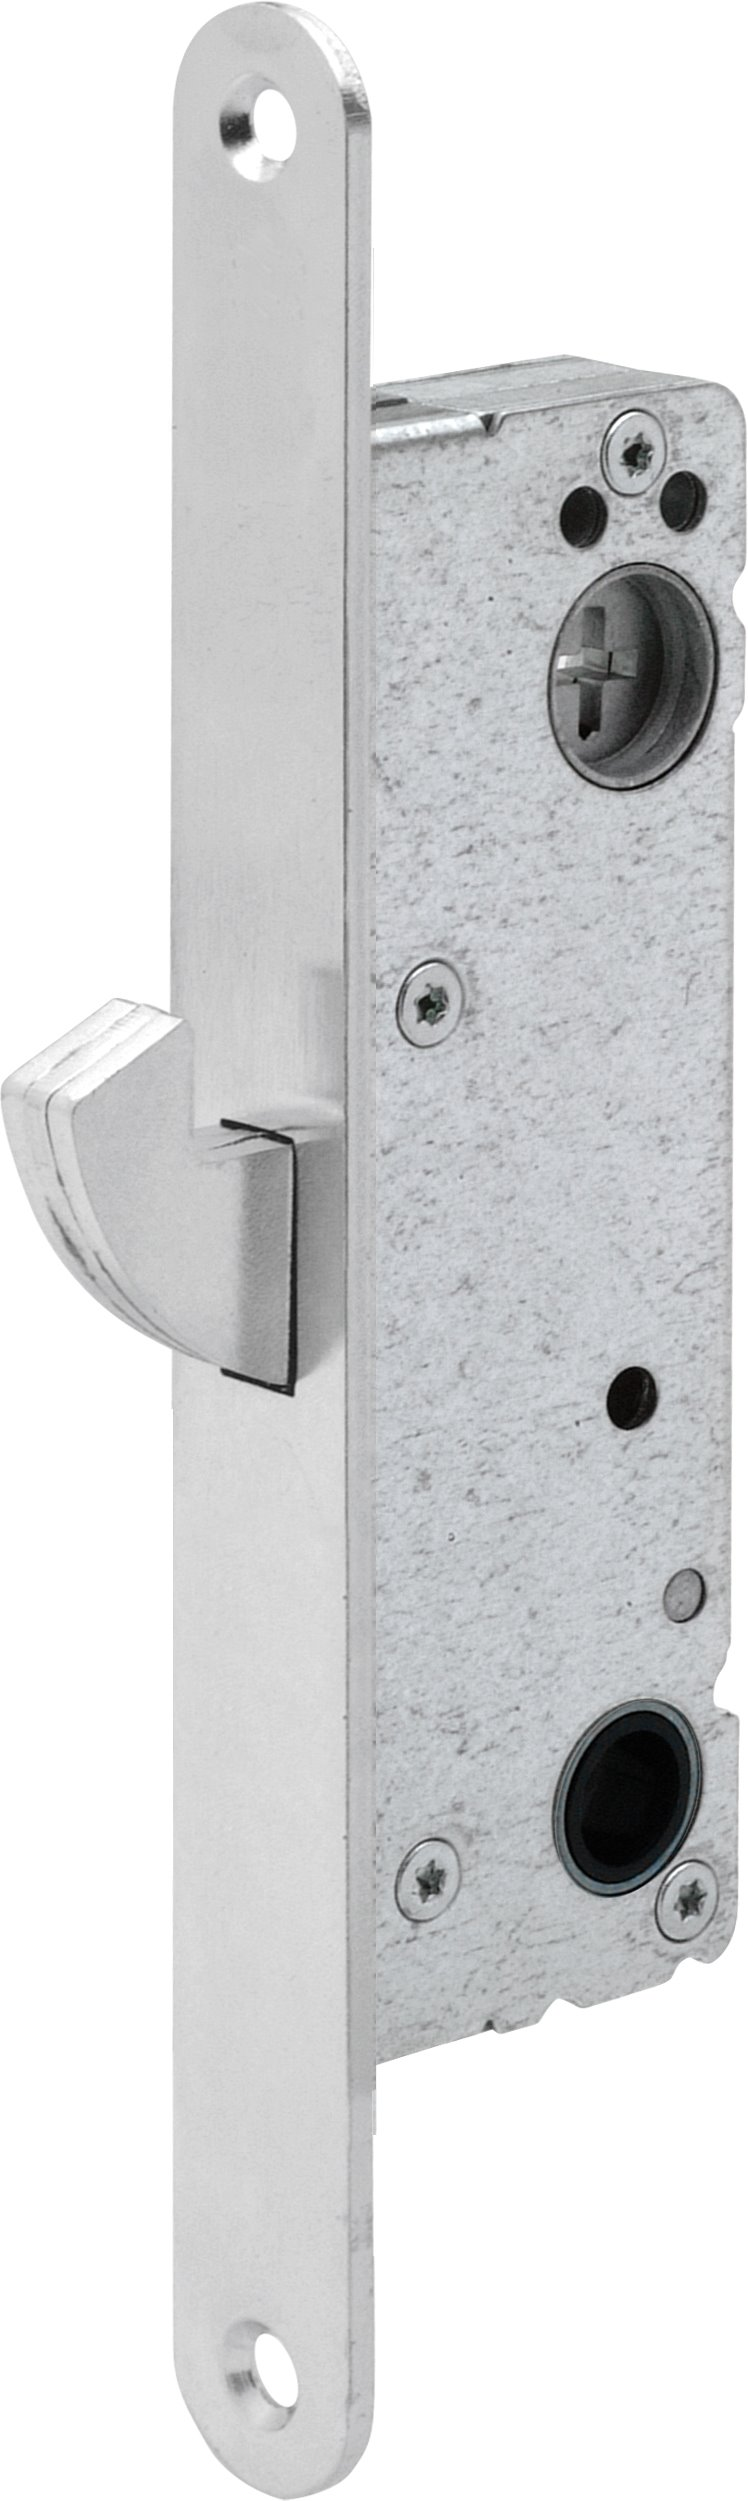 ASSA Connect 411 MPL